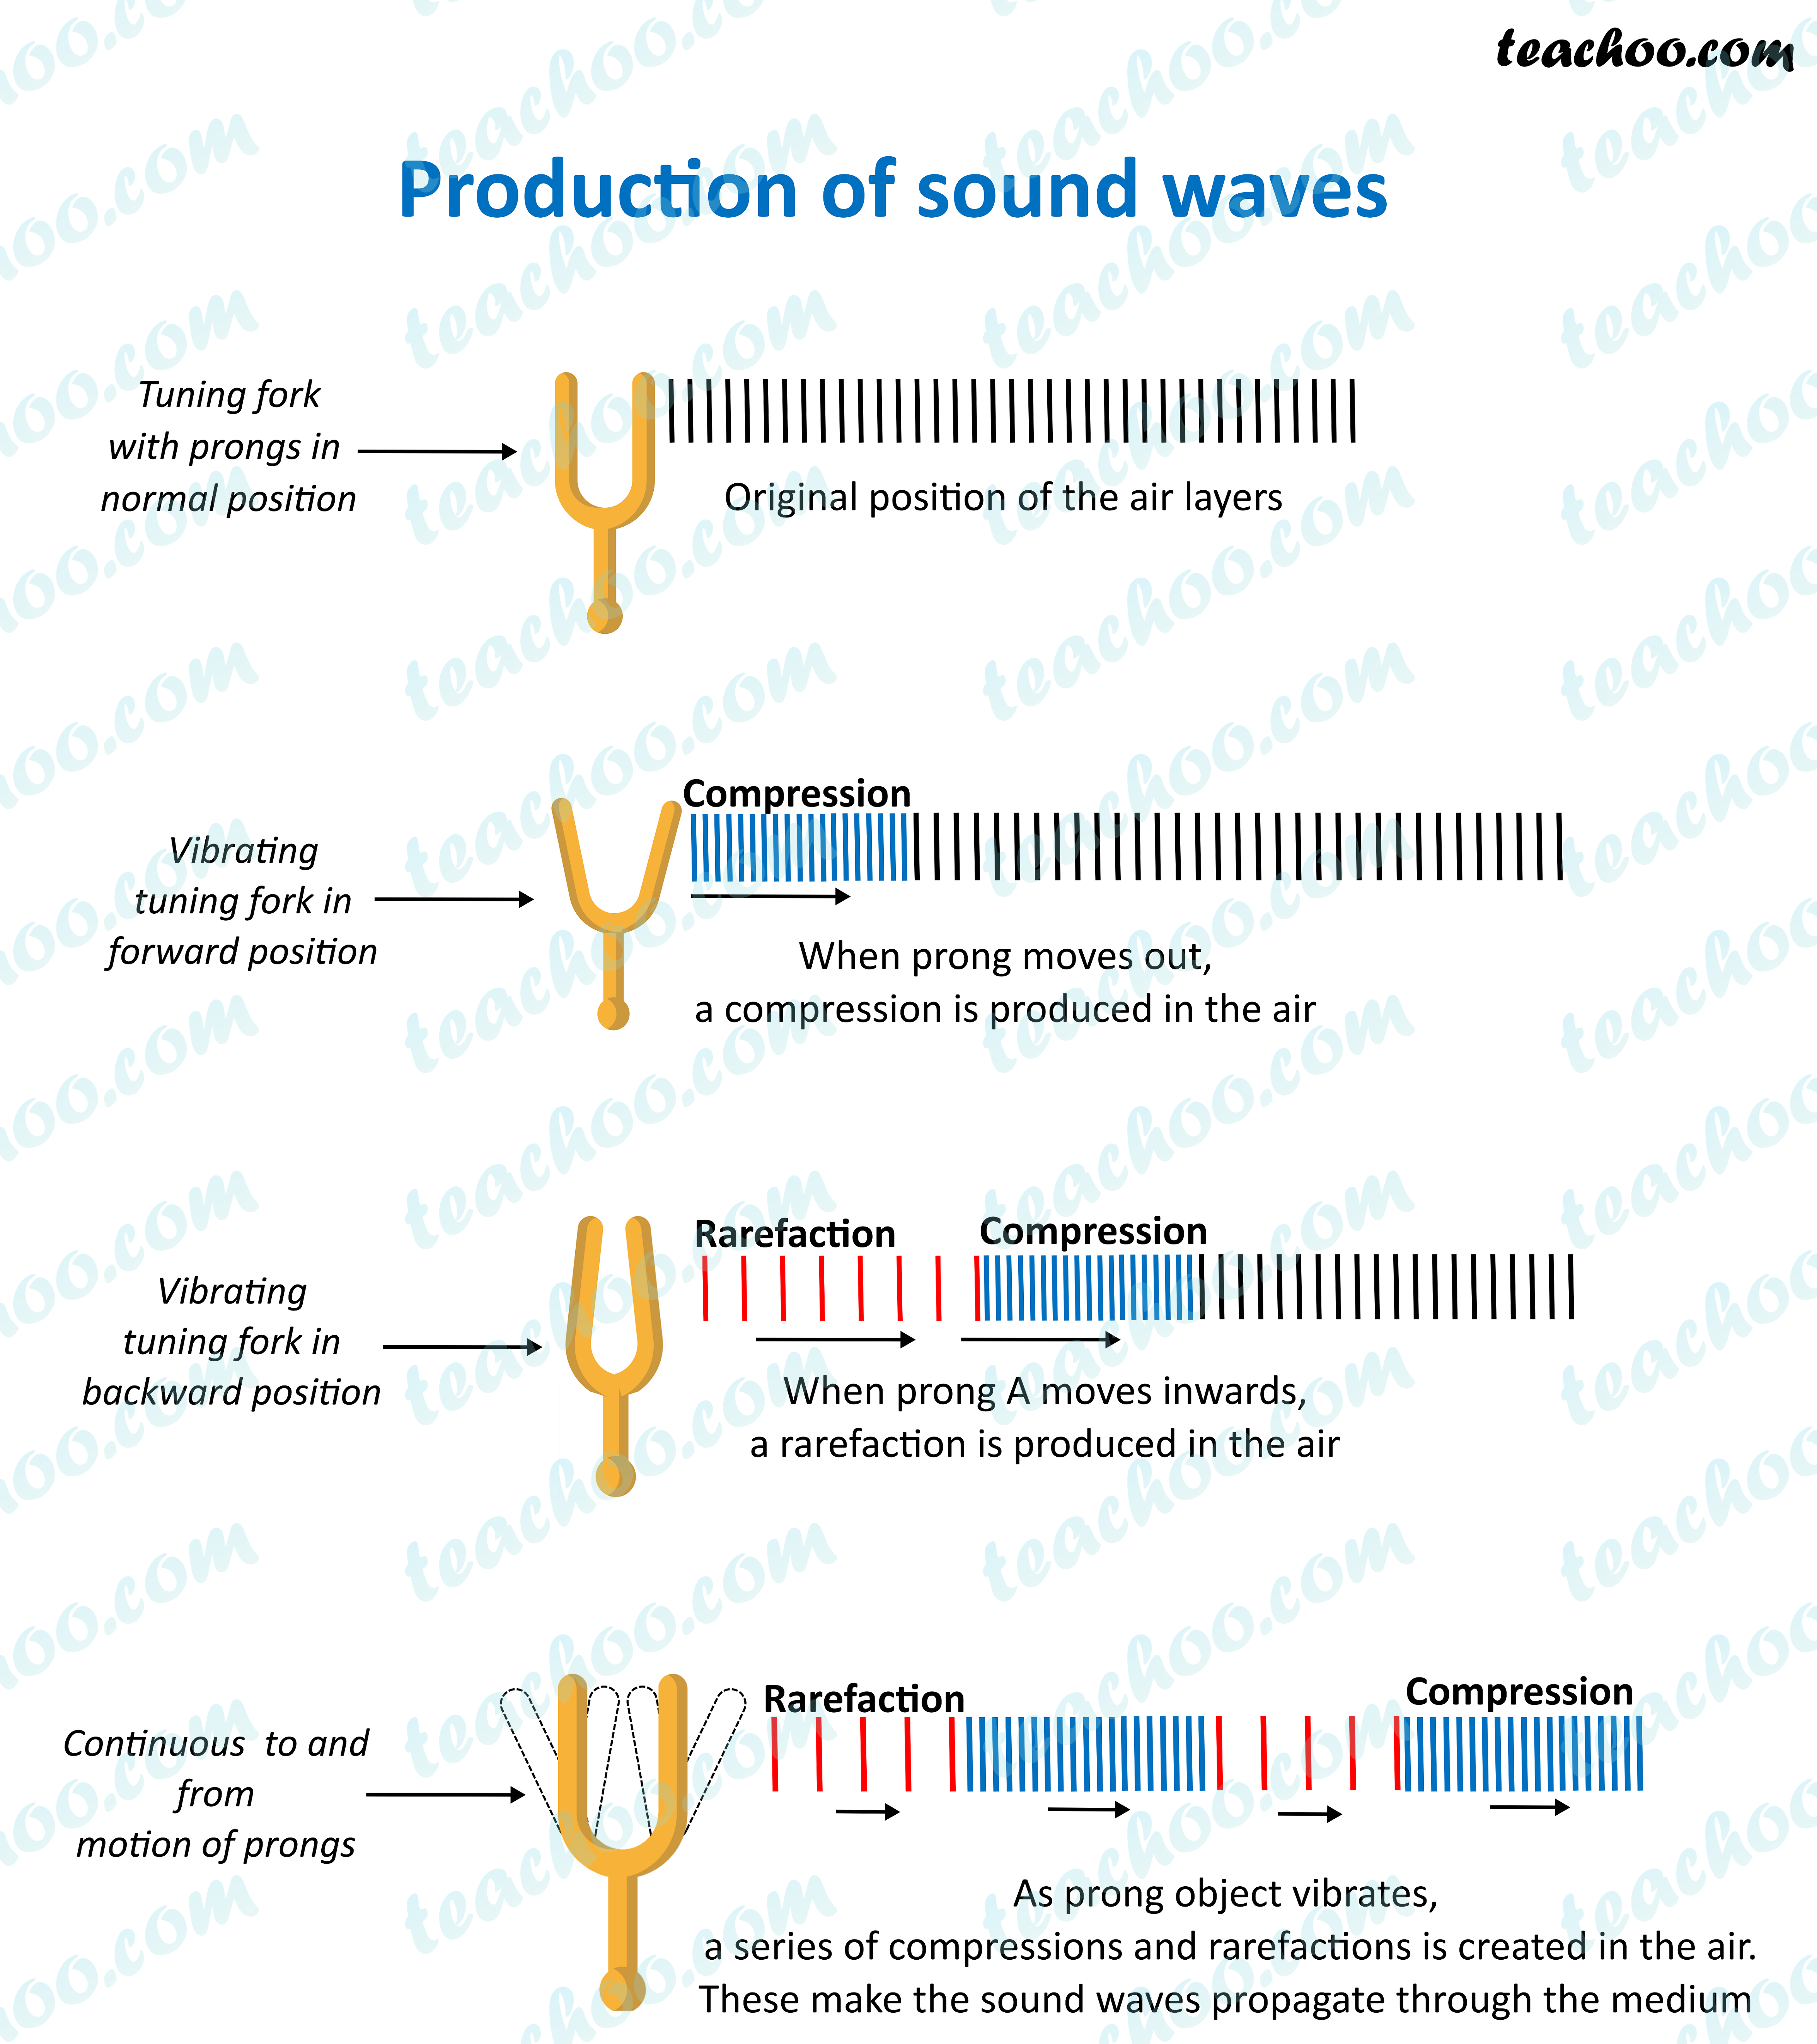 production-of-sound-waves-(2).png